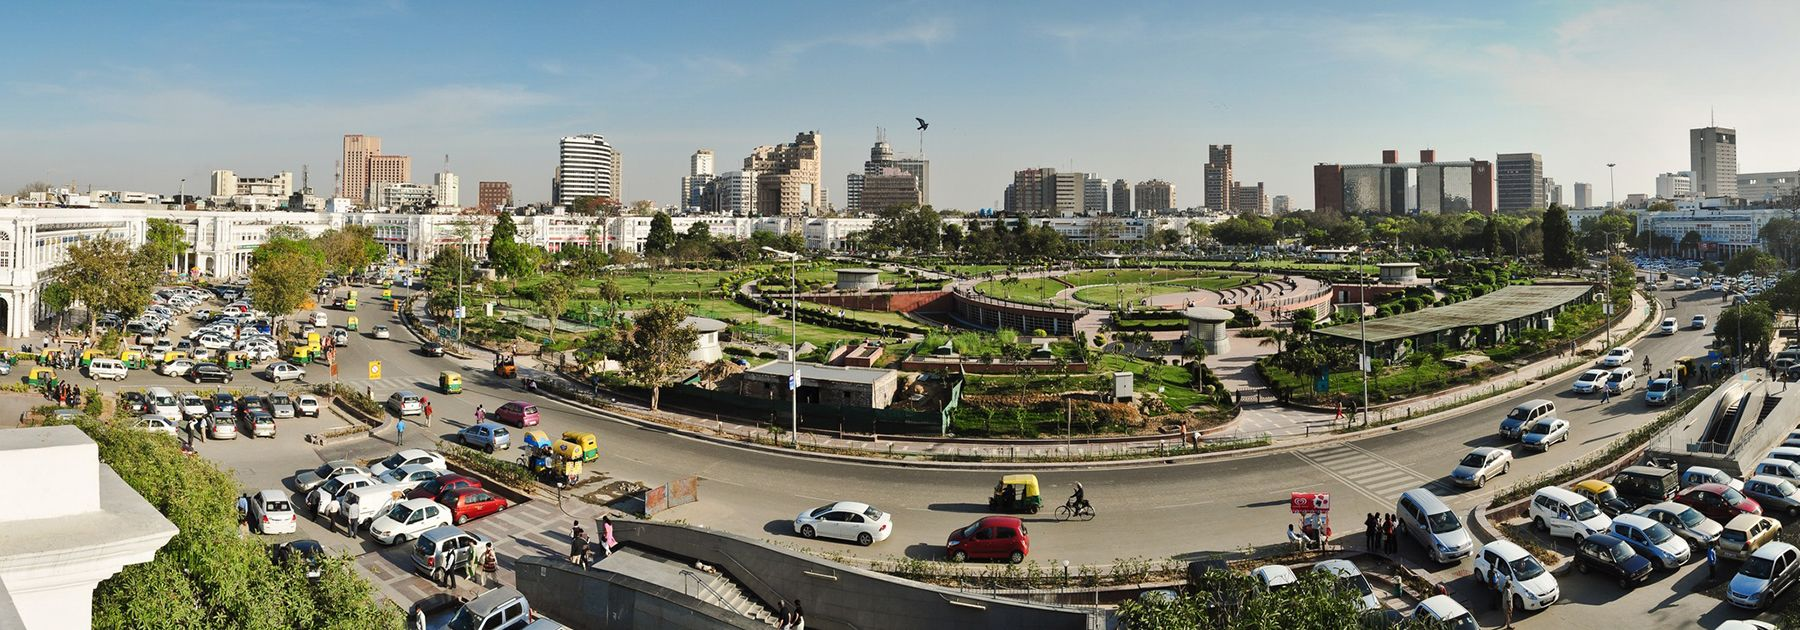 Panoramic view of inner circle and central park in Connaught Place, New Delhi. (Kabi1990, licensed under CC BY-SA 3.0)